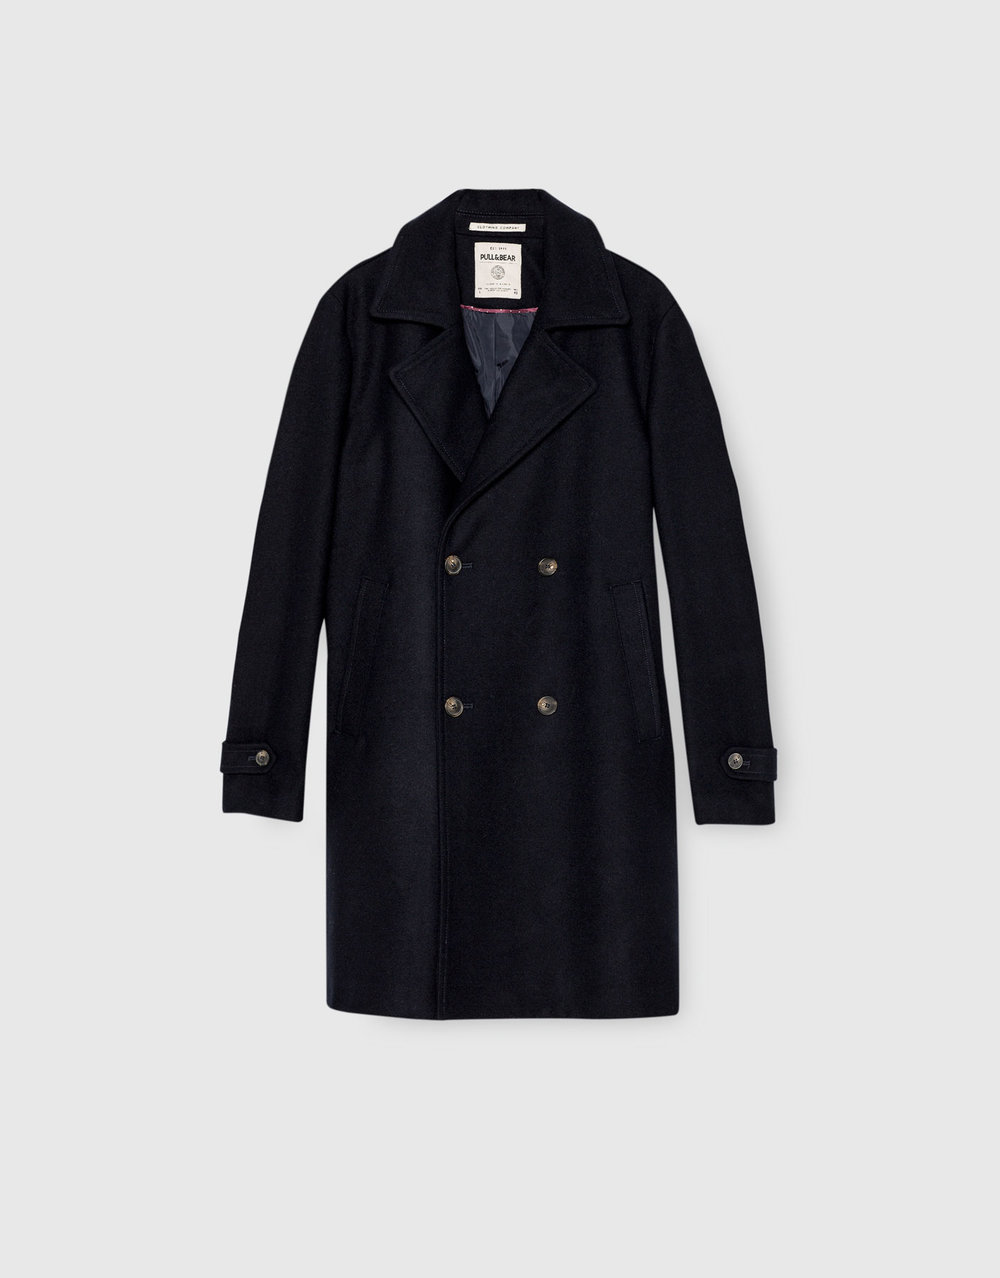 Double-breasted cloth coat, £89.99 (pullandbear.com)